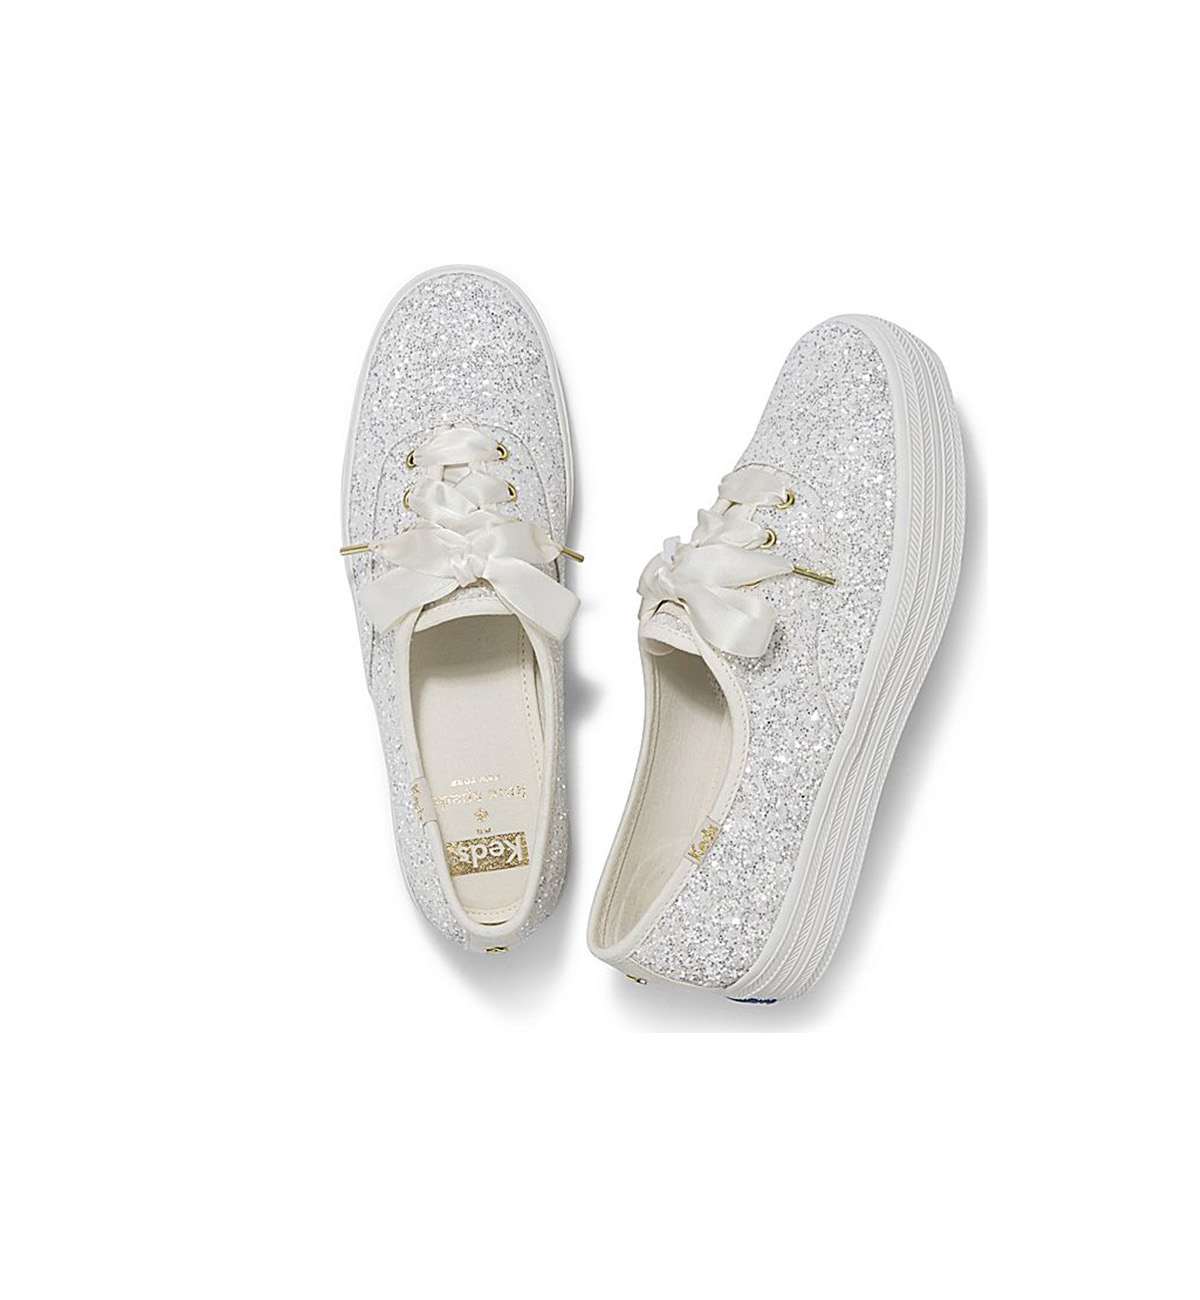 Wedding Sneakers by Keds and Kate Spade